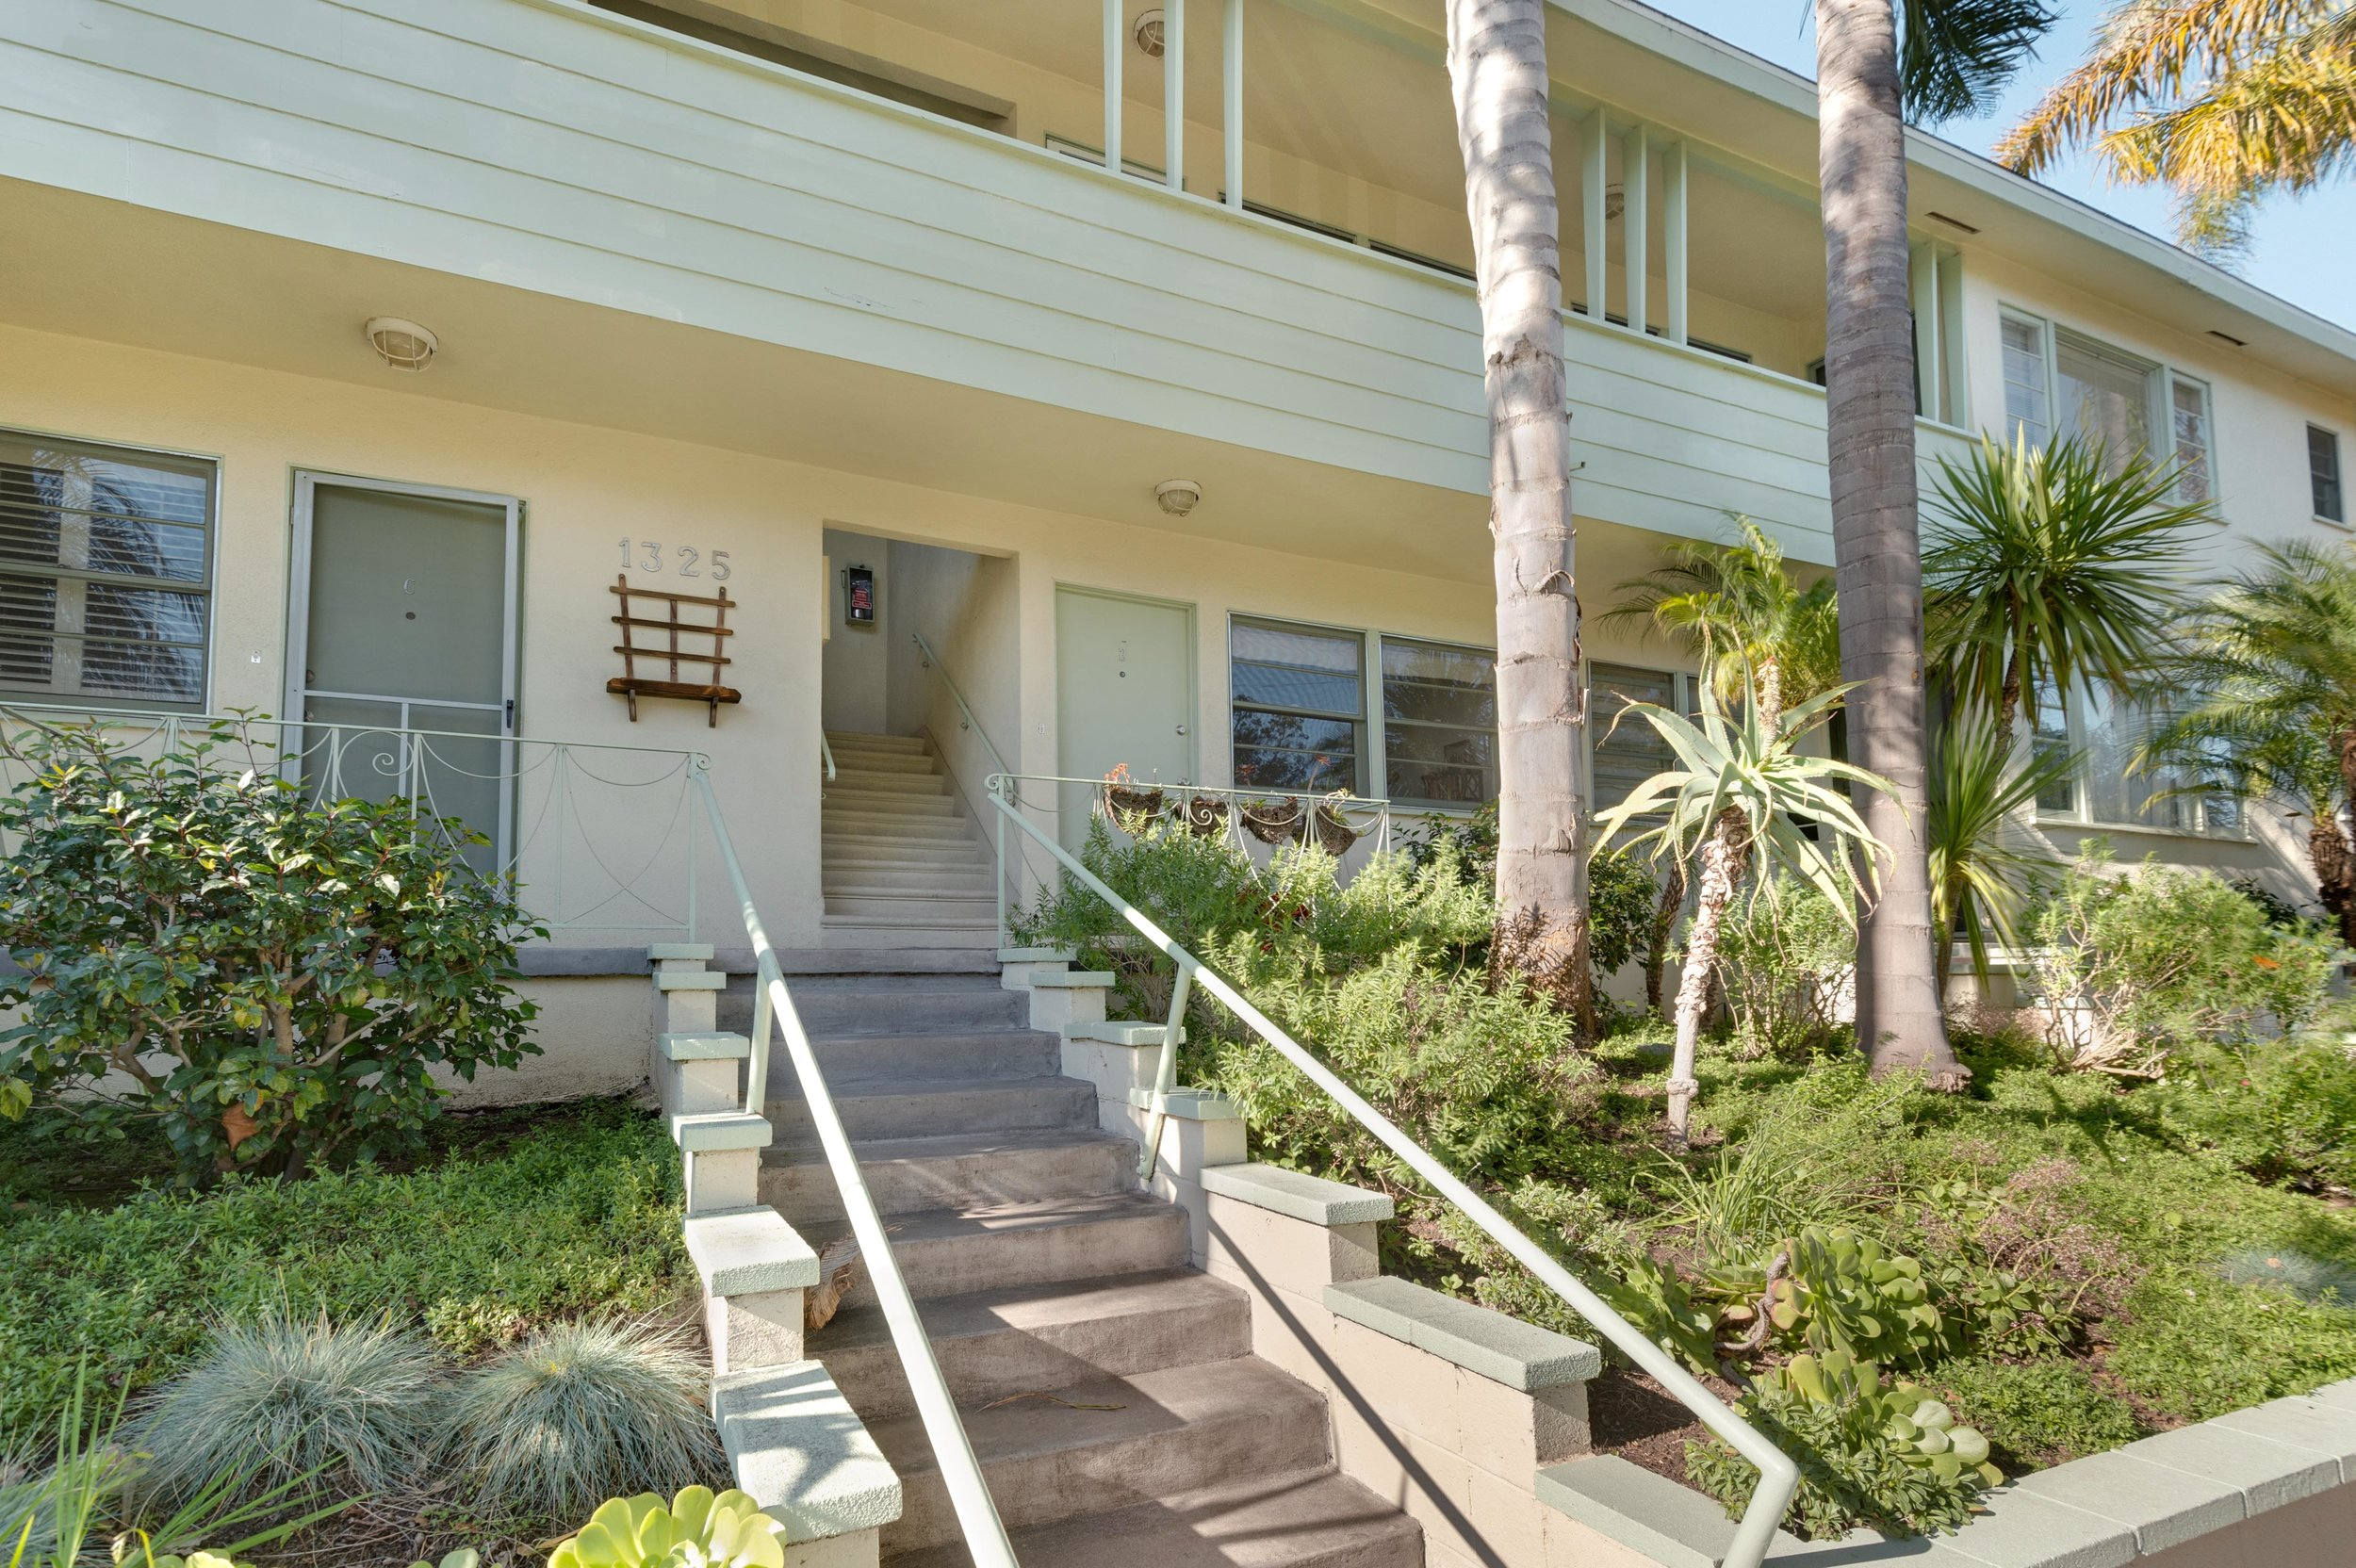 $525,000 | 1325 Washington Ave, Santa Monica